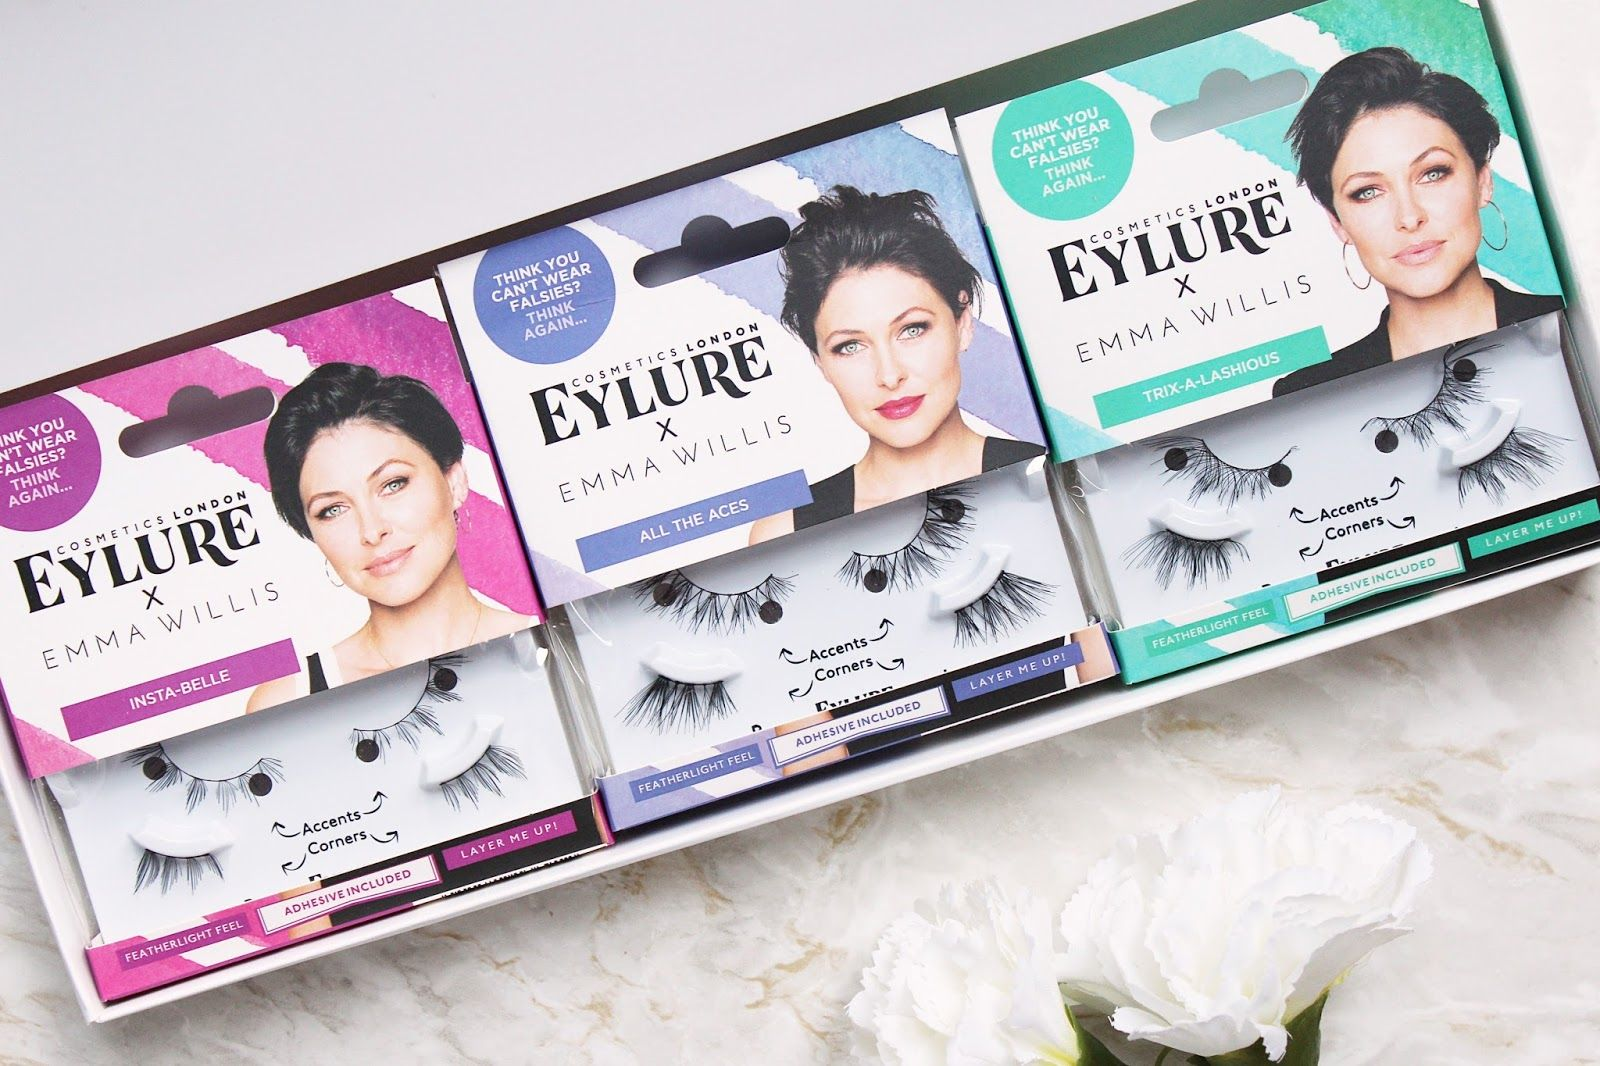 8b721cd6923 Eylure x Emma Willis Lash Collection | Hannah Heartss Blog | Emma ...